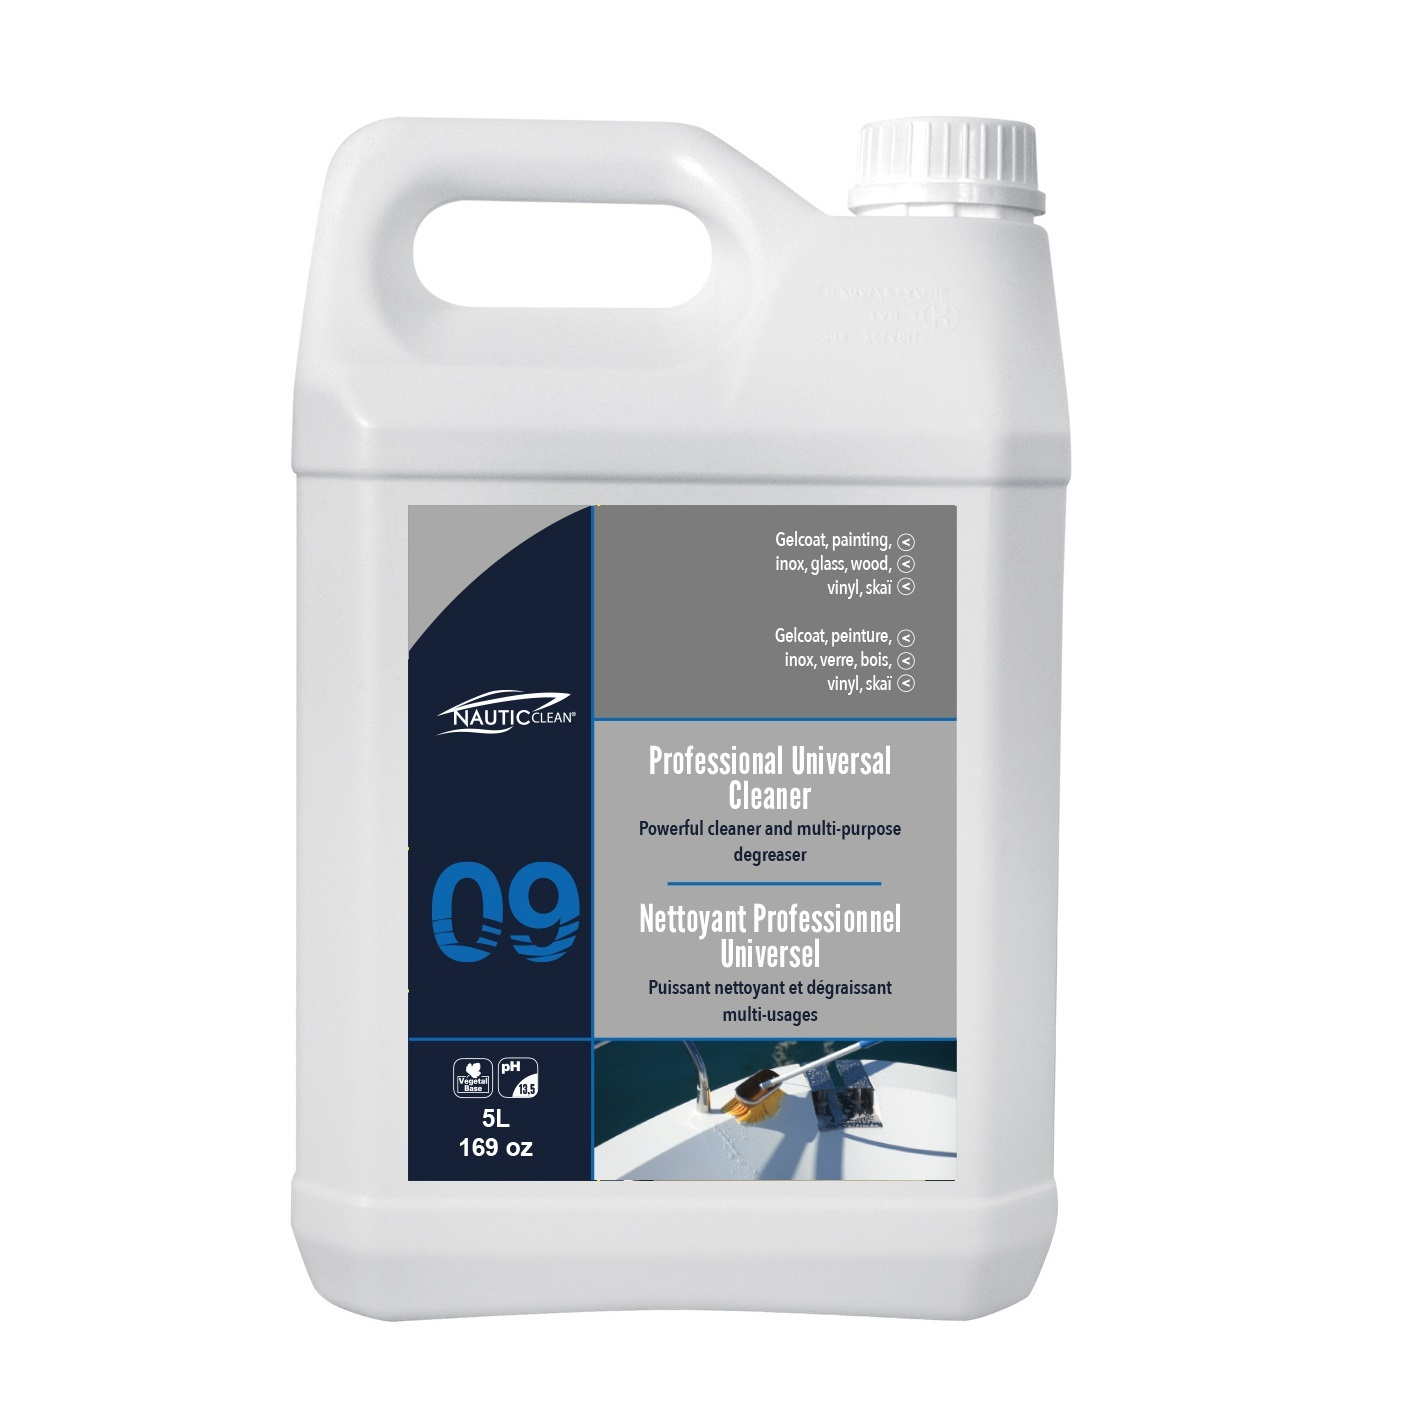 Professional Universal Cleaner №09